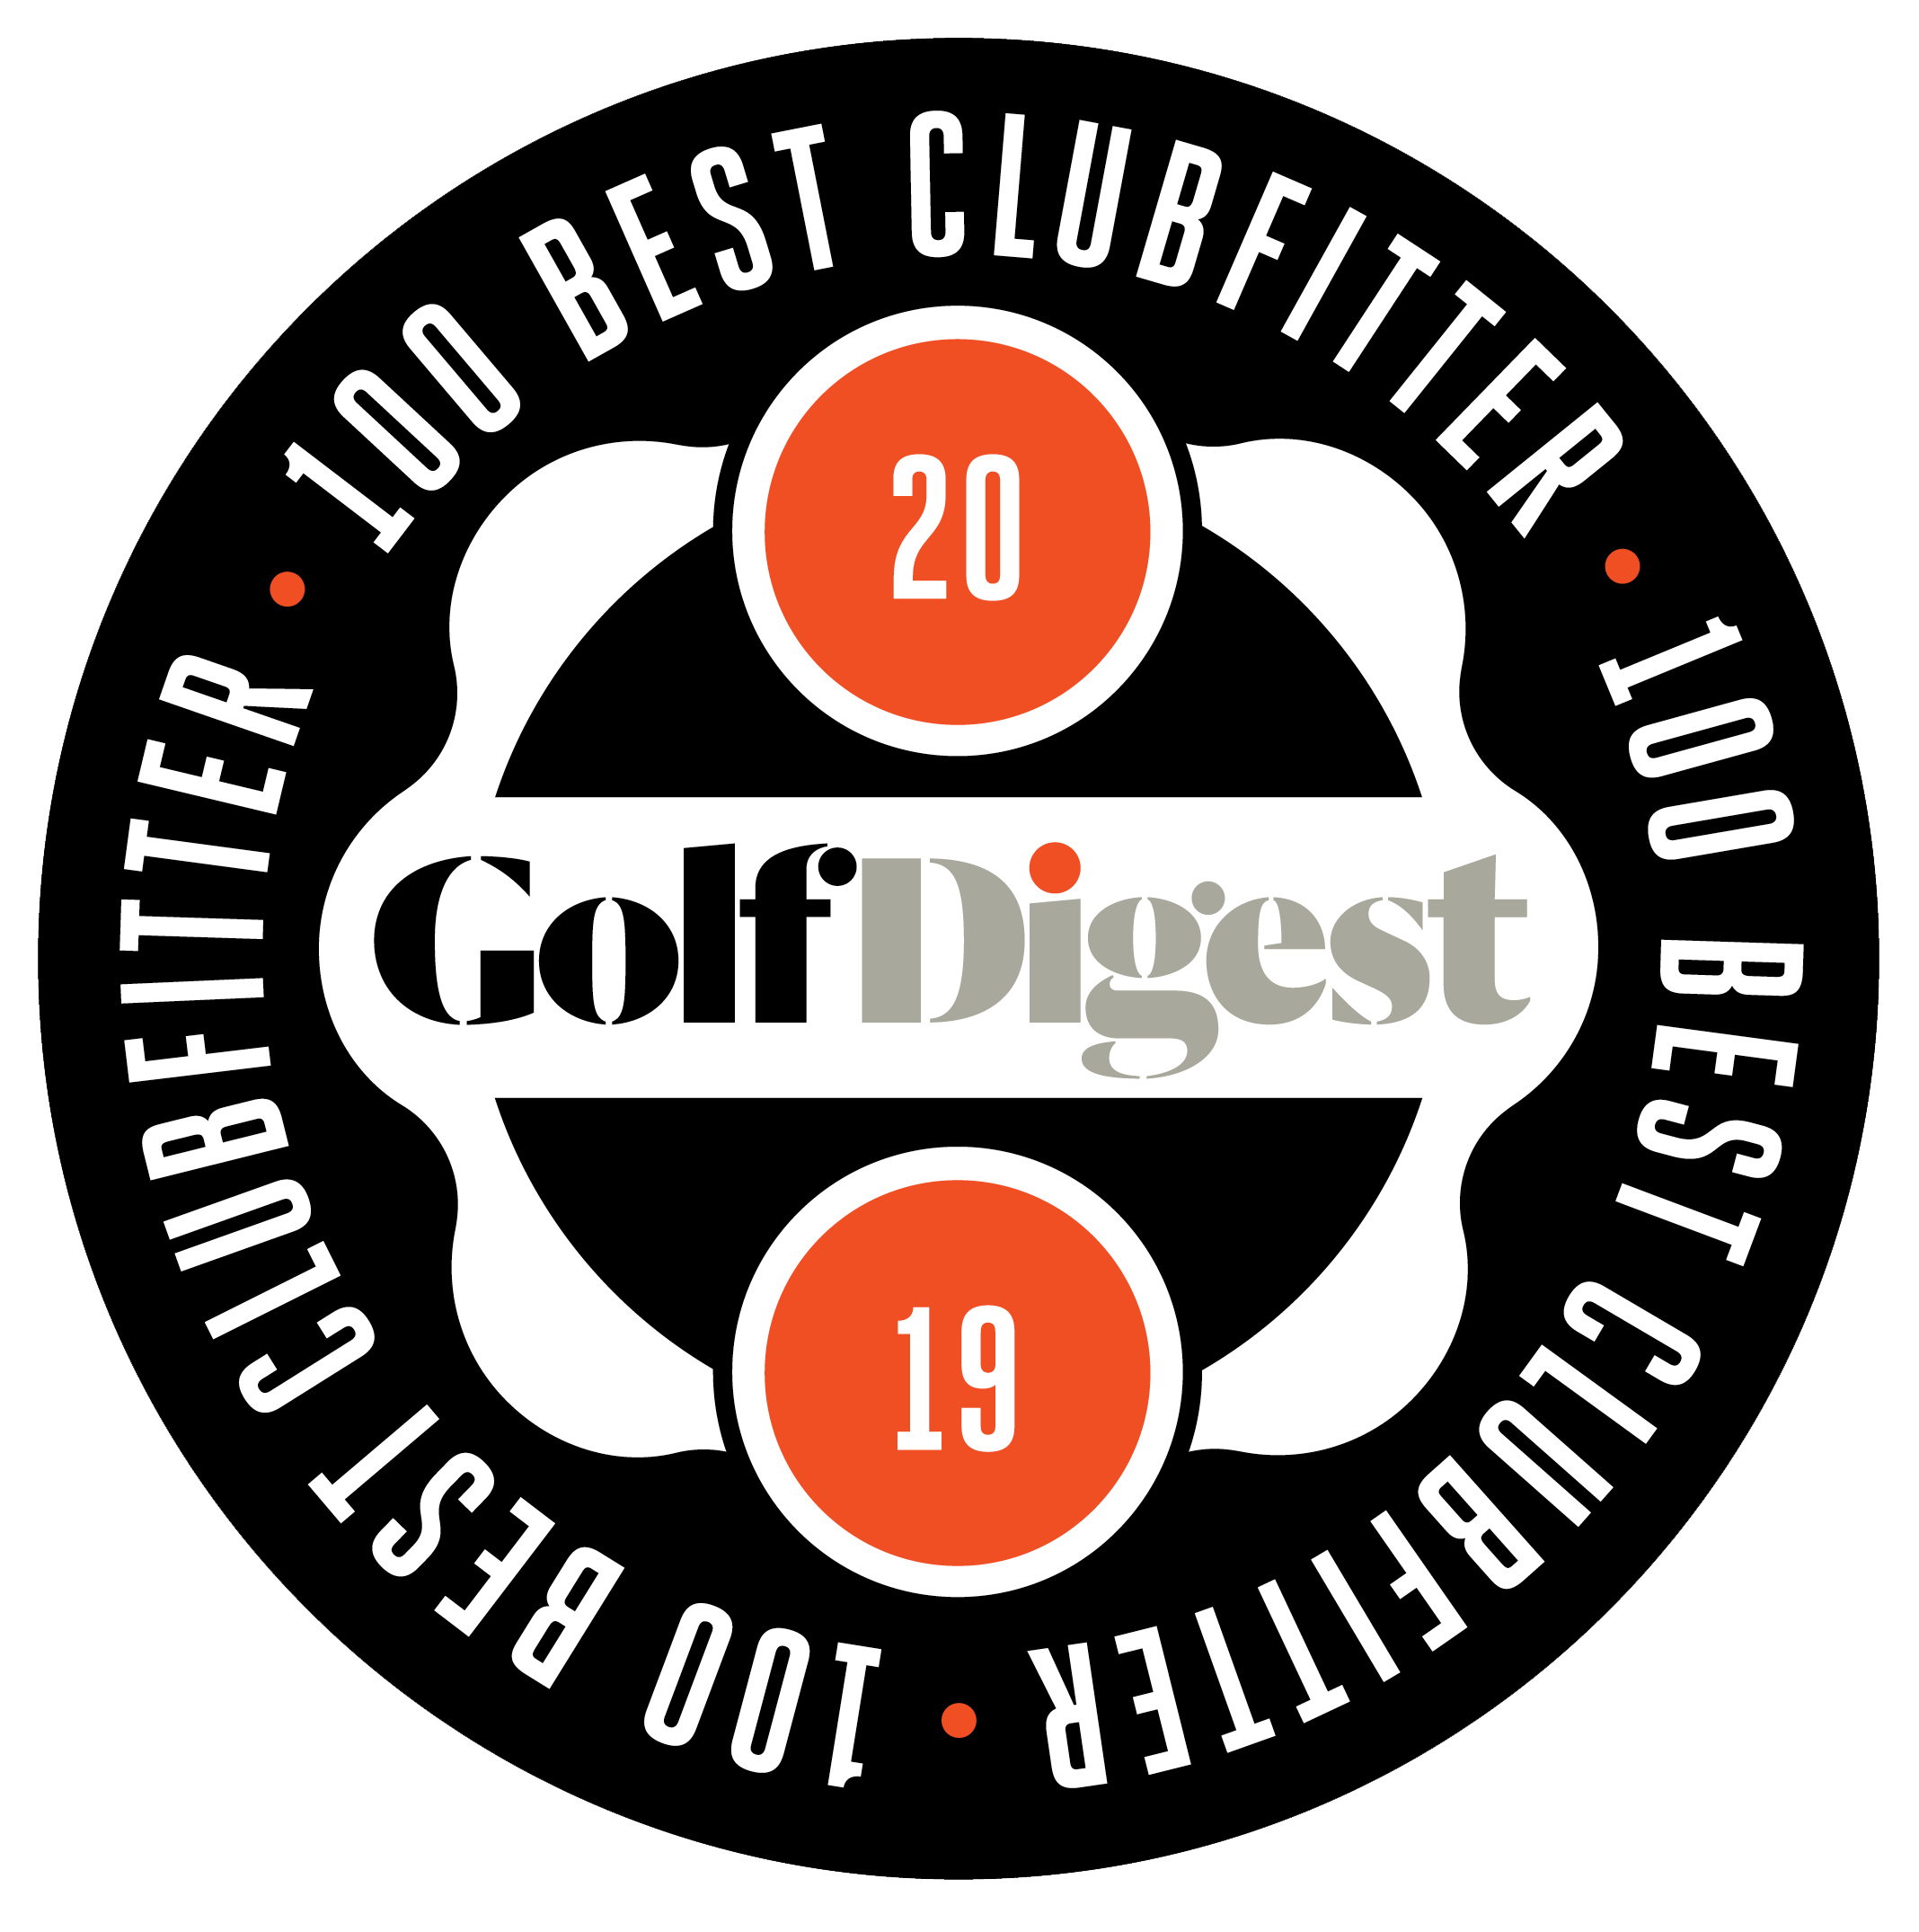 100 BEST CLUBFITTERS 2019